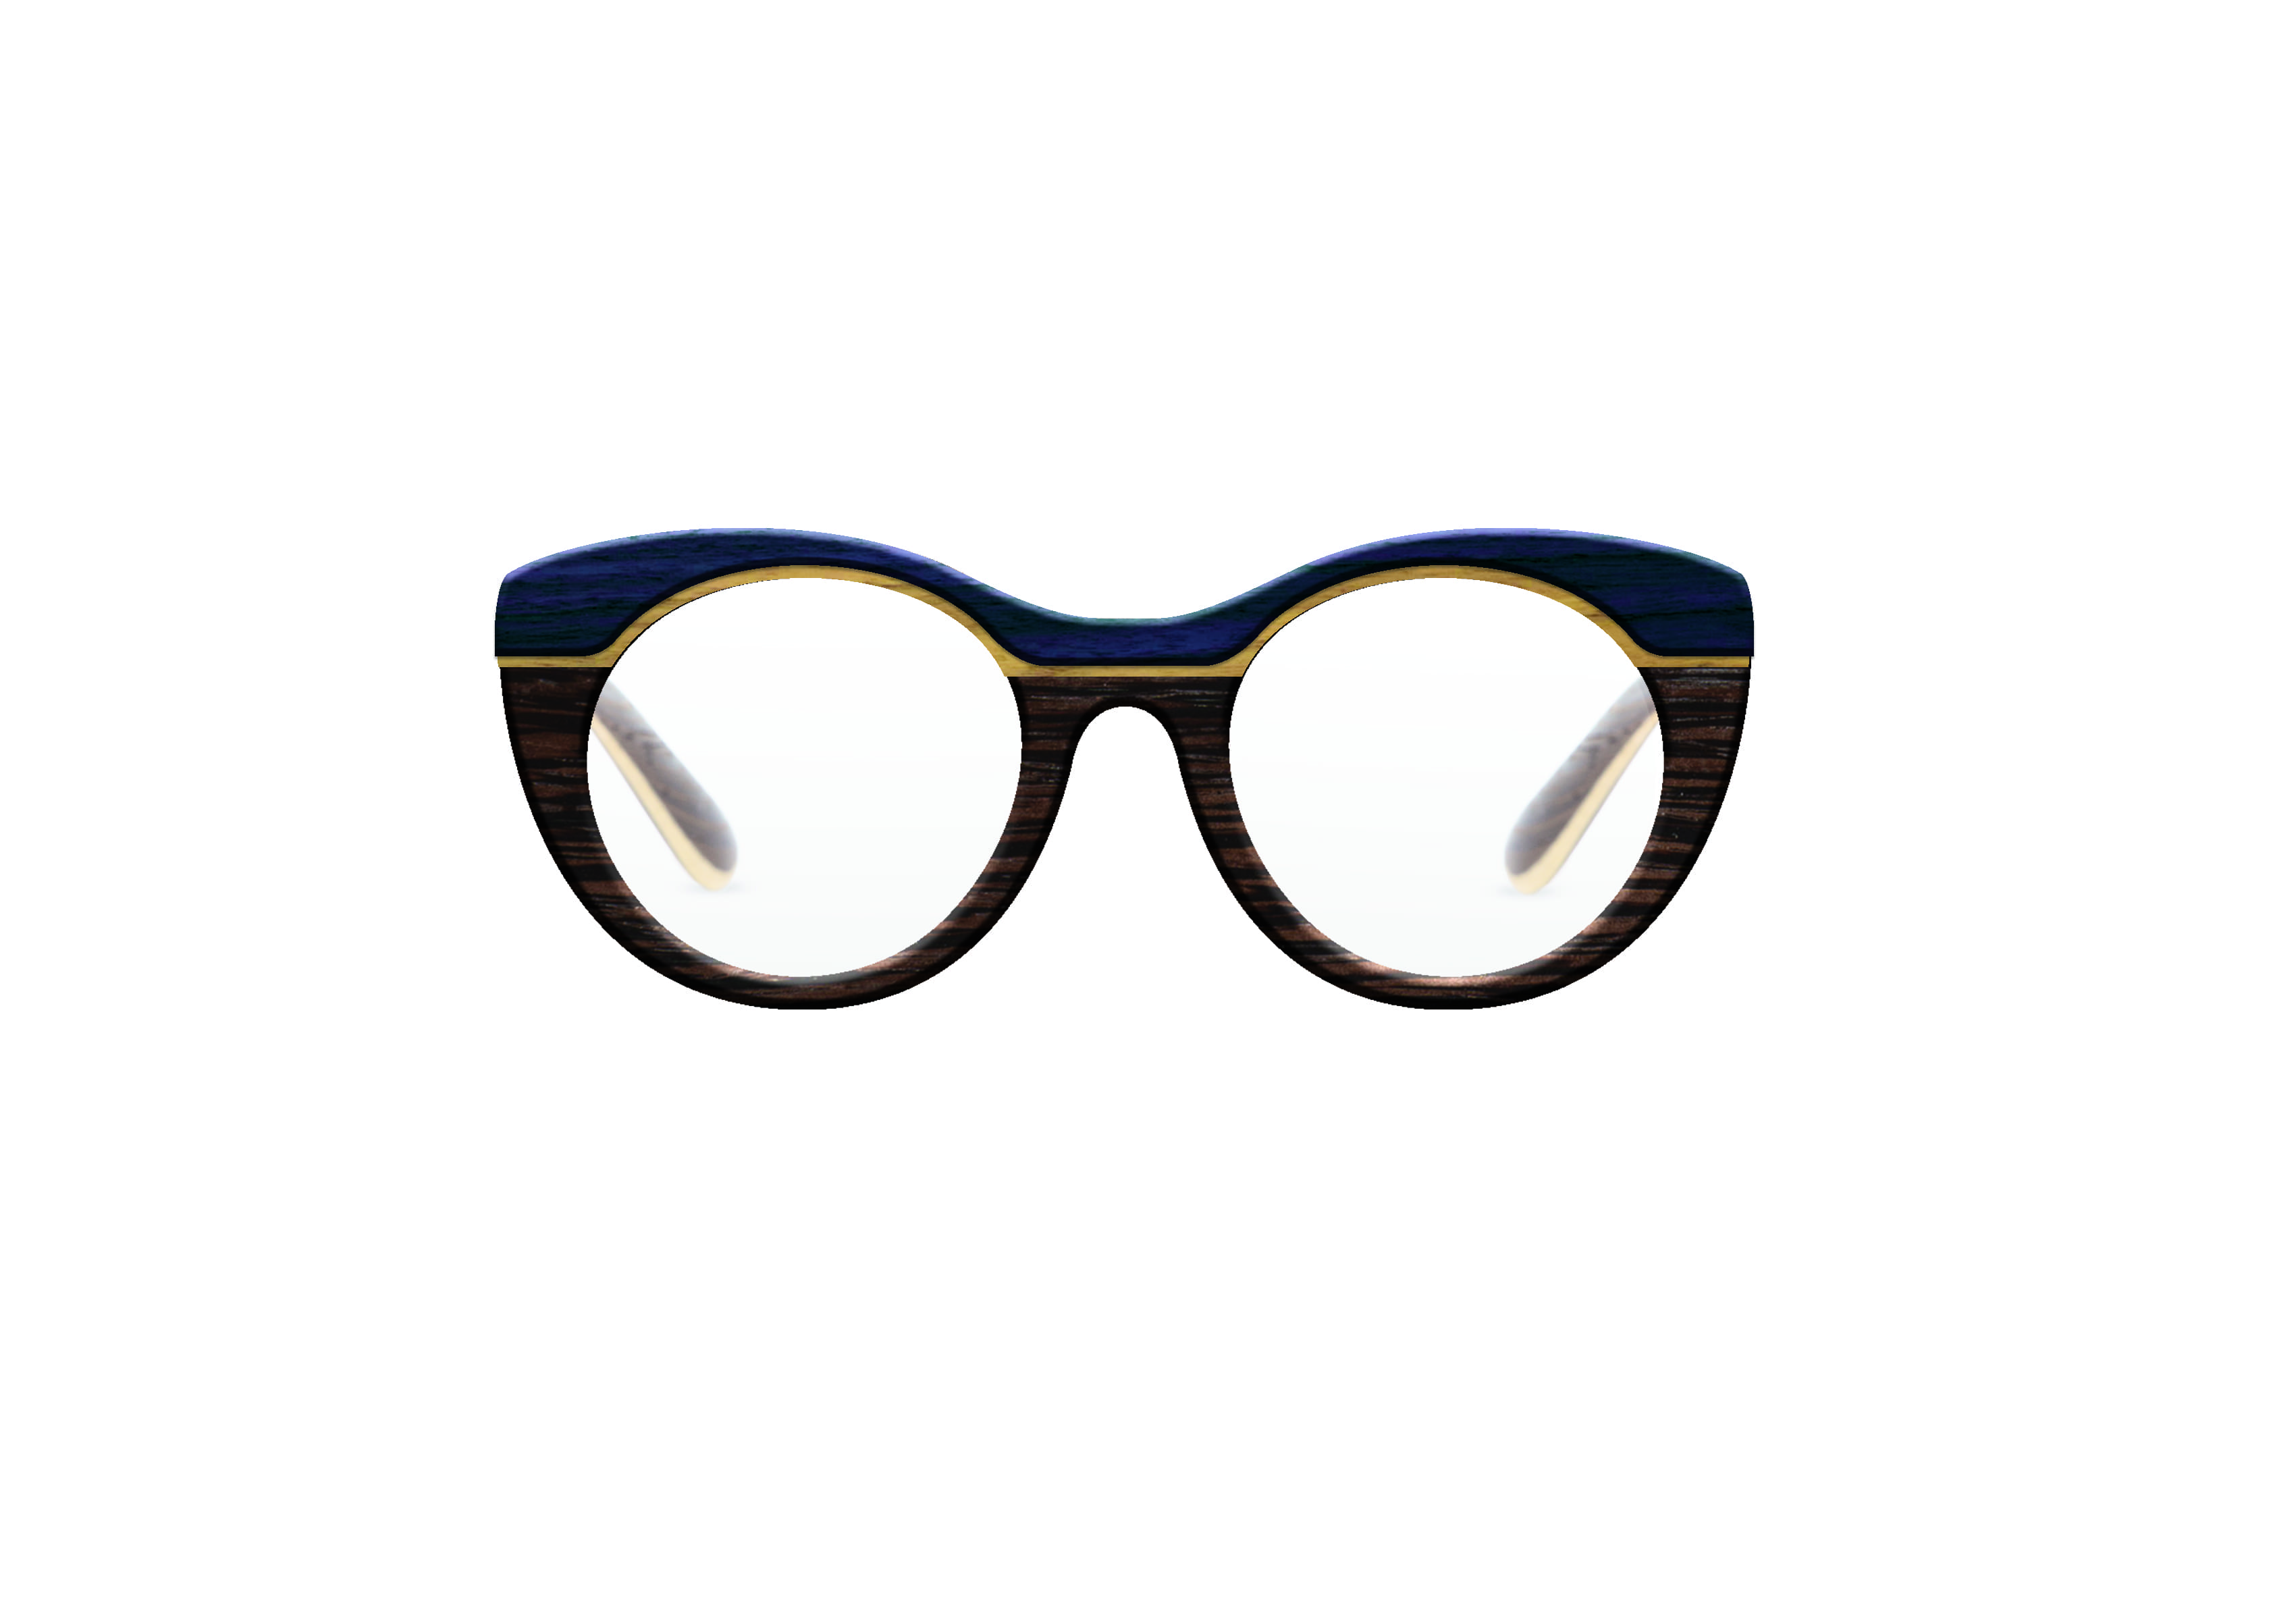 Bloom VAKAY handmade wooden eyewear